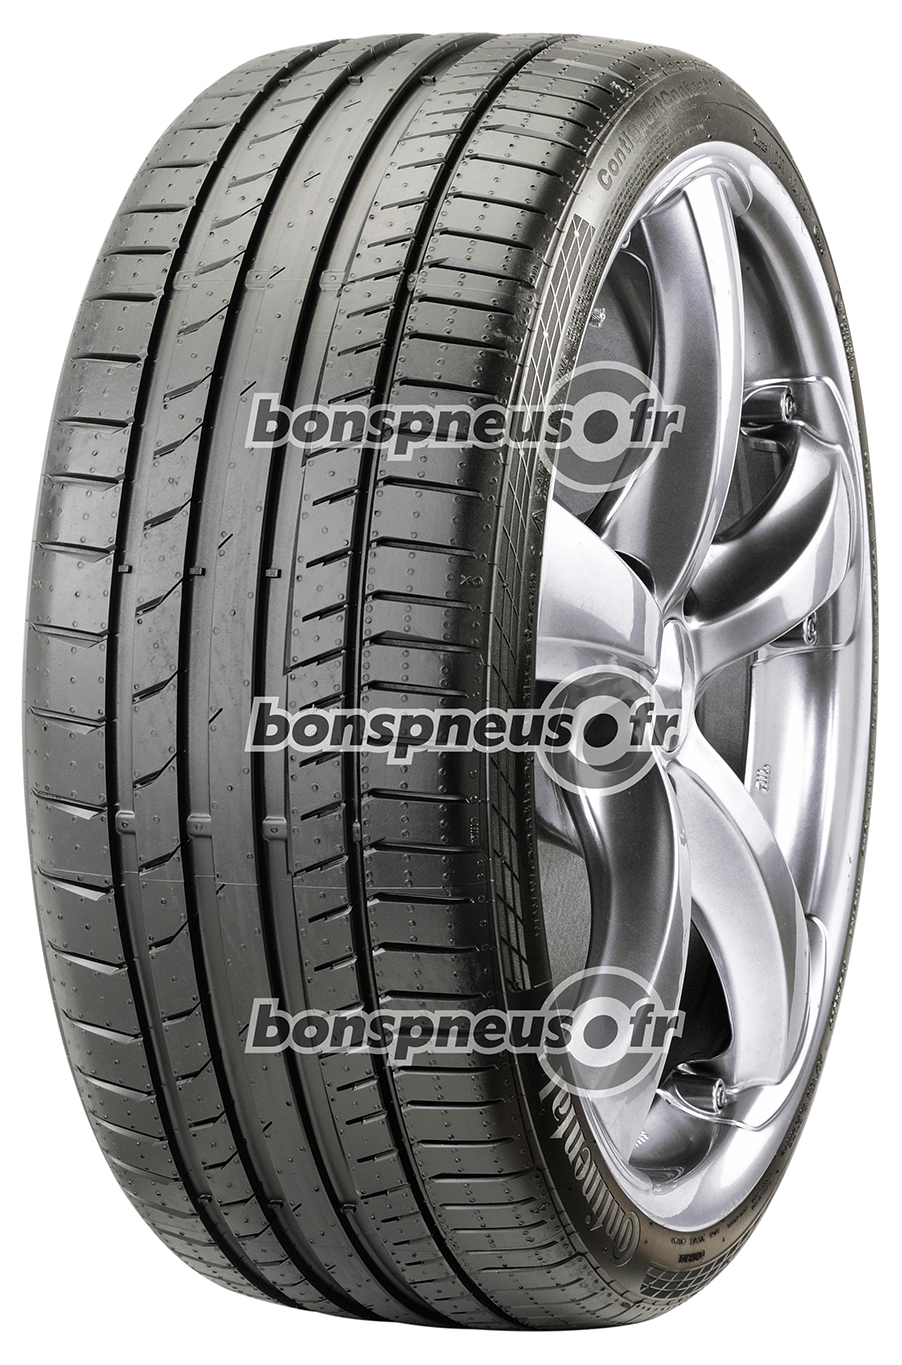 275/30 ZR21 (98Y) SportContact 5 P XL RO1 FR  SportContact 5 P XL RO1 FR